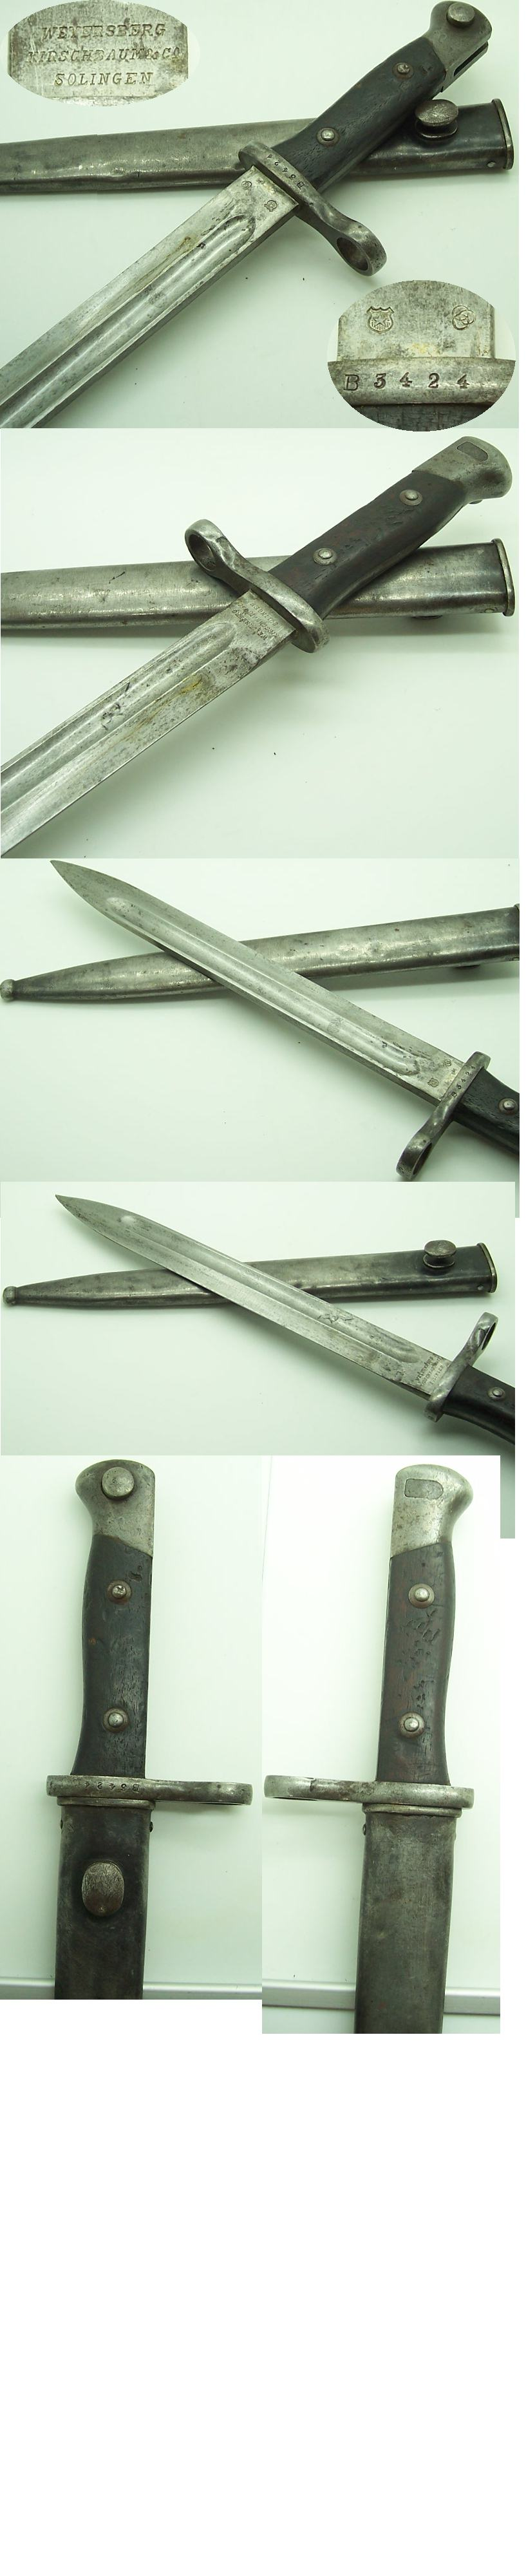 Chilean 1895 Mauser Bayonet by WKC